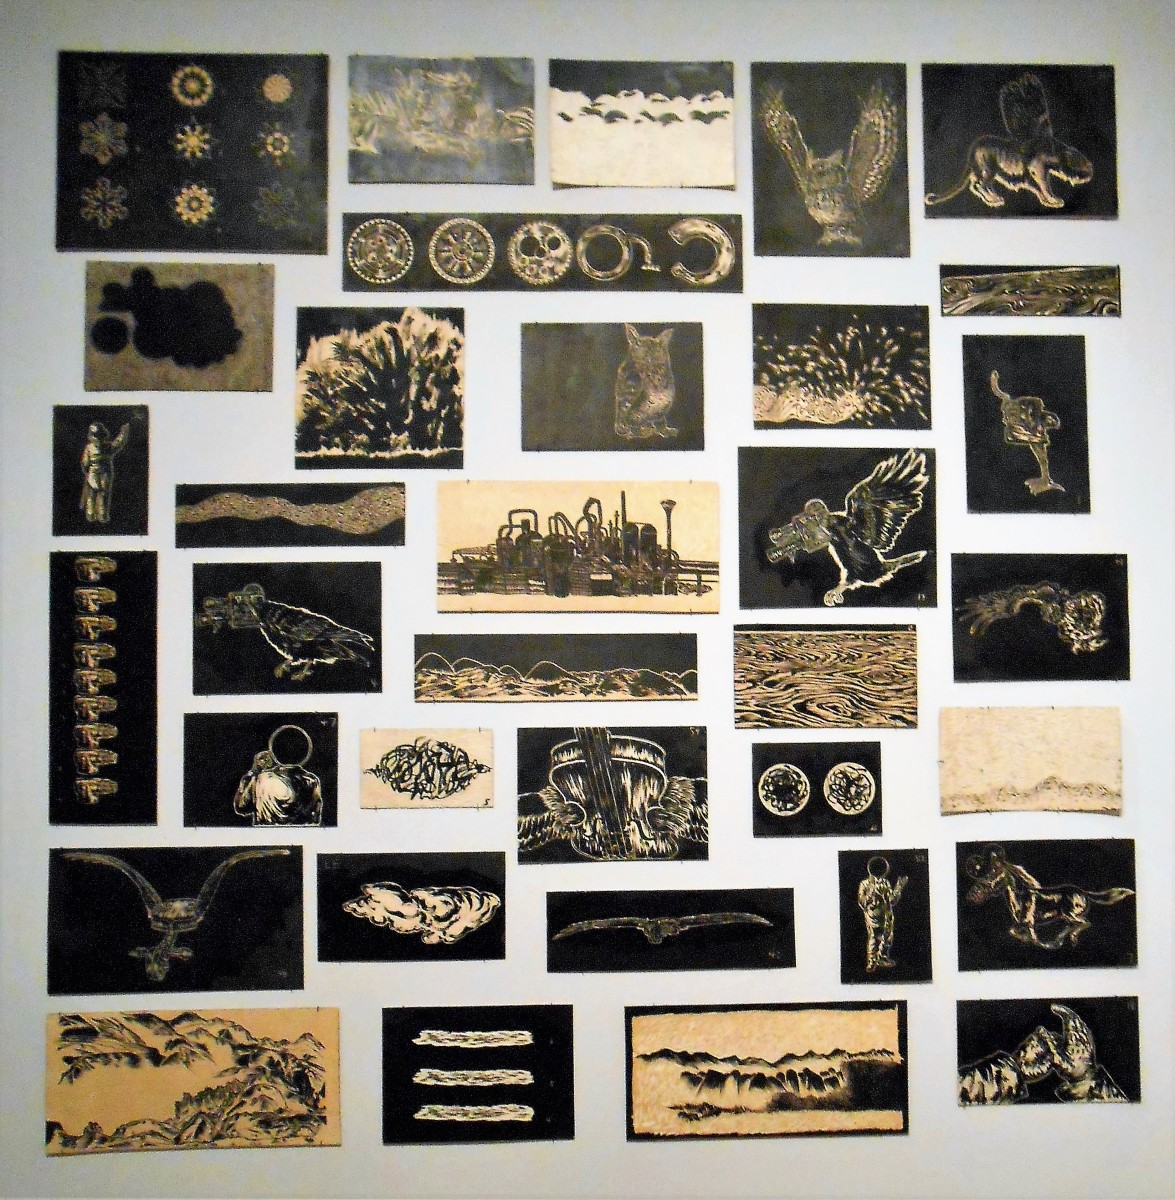 This image shows many of the print blocks on display all together.  They were fascinating.